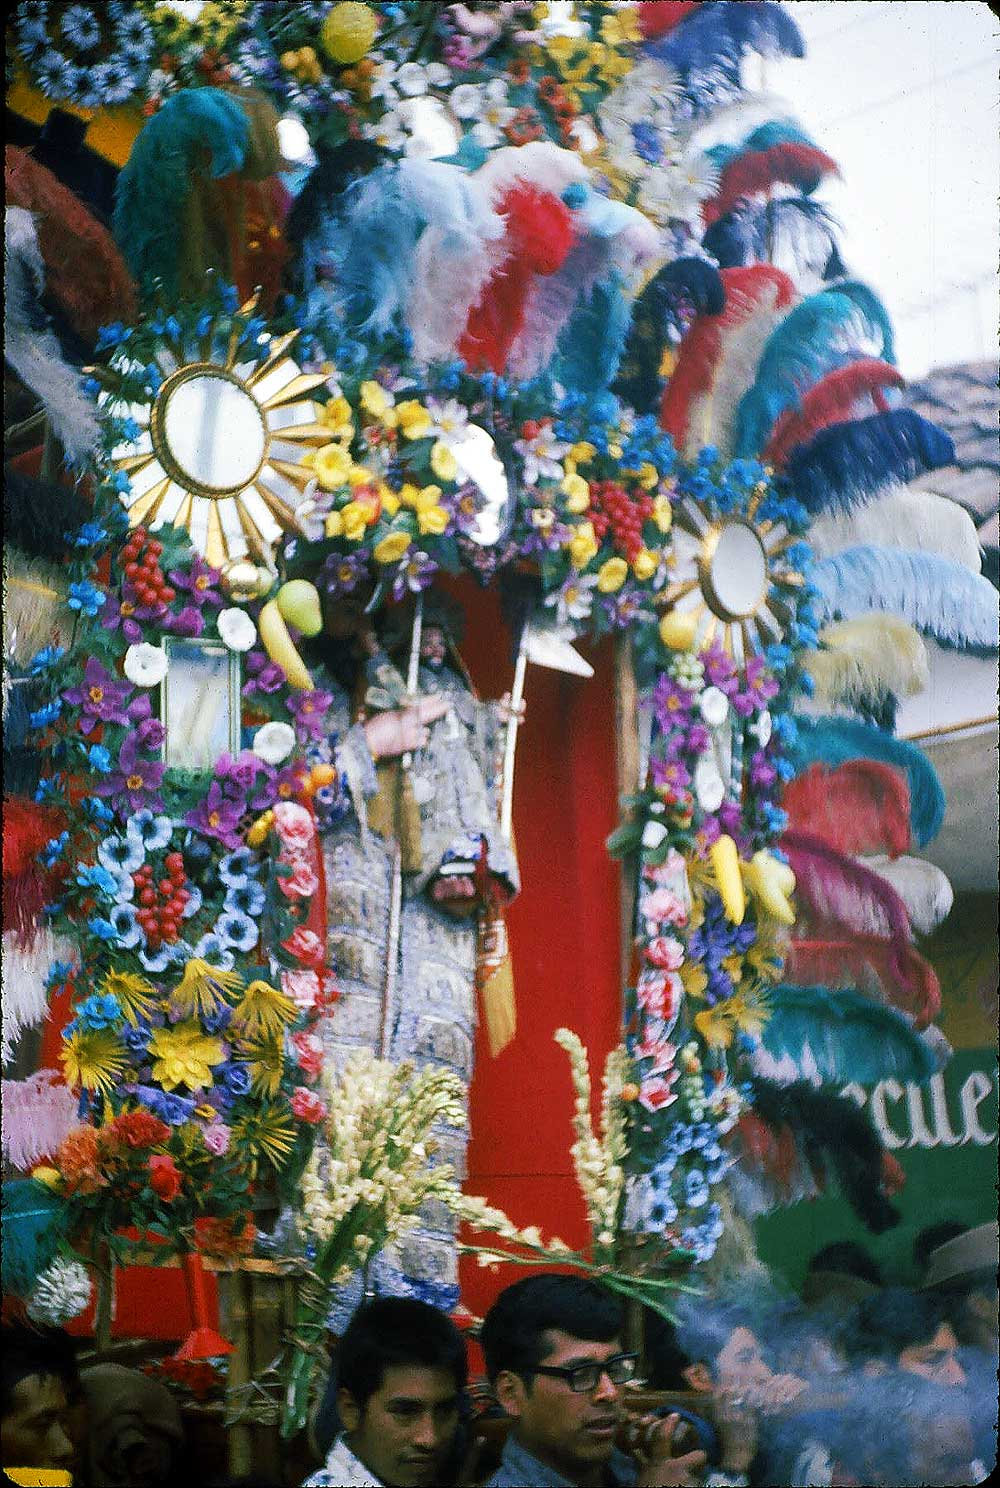 A festival in Chichicastenango, 1974, prob. Dec.